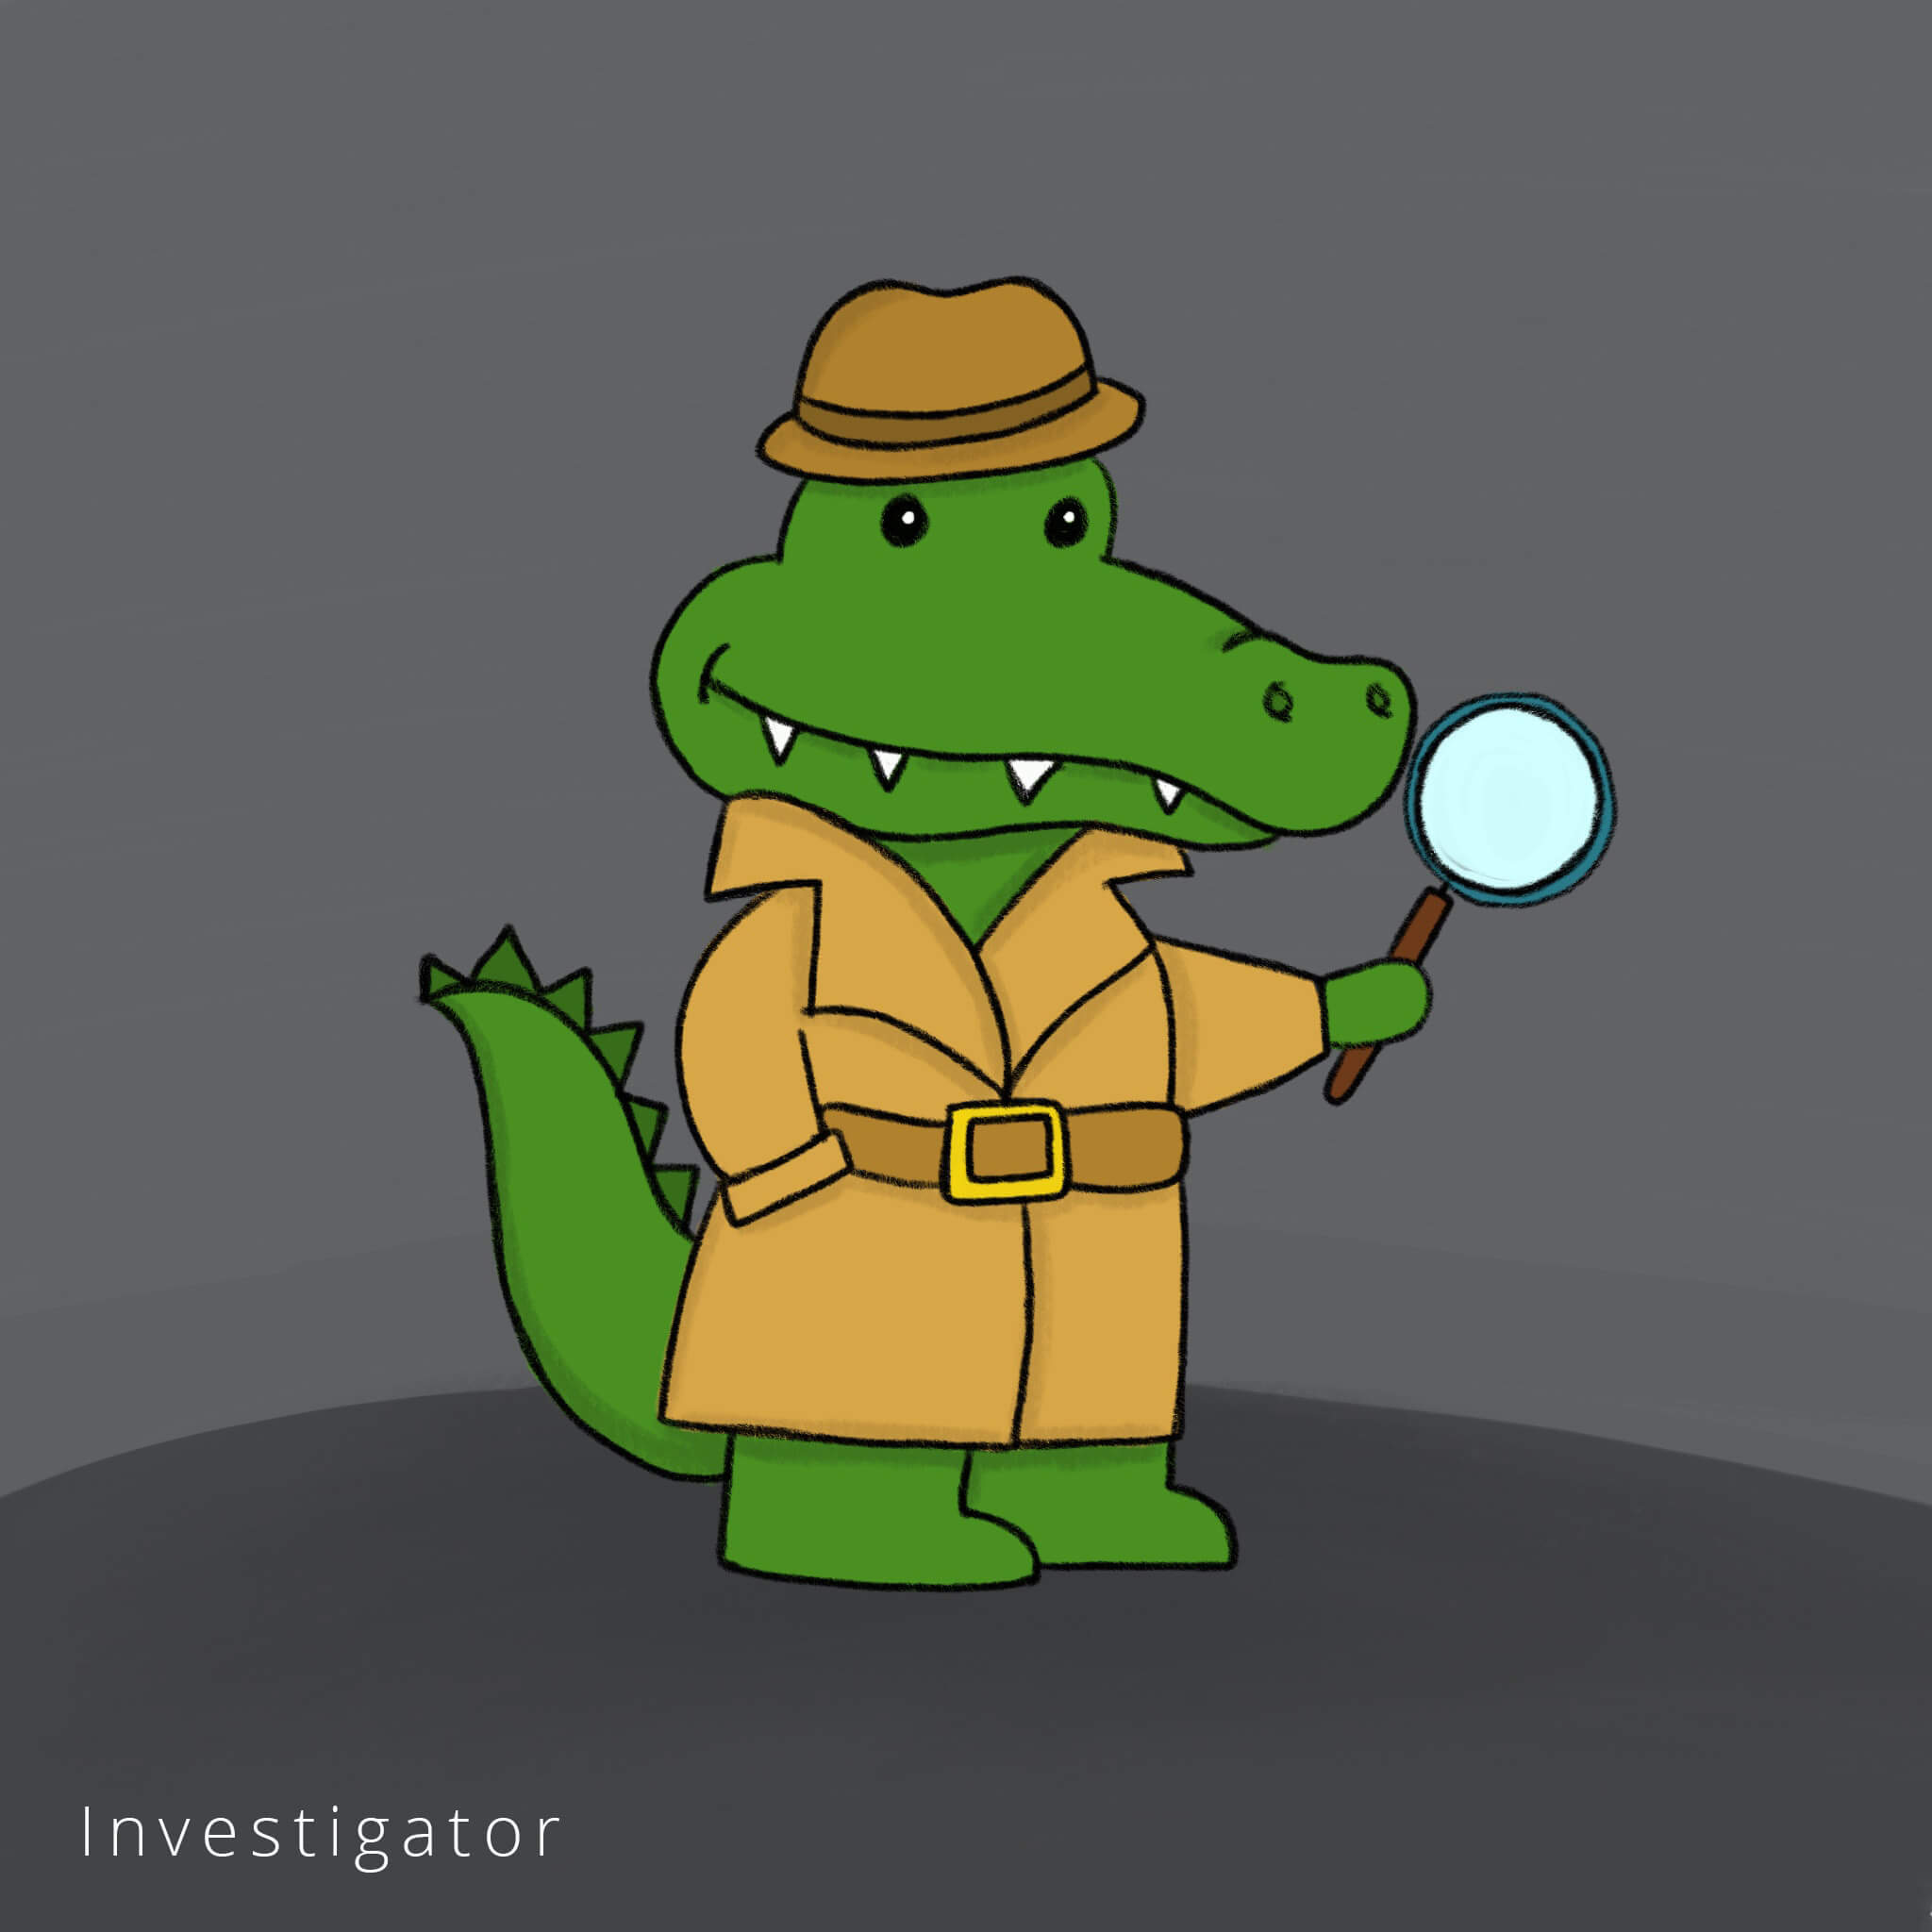 an illustration of a cartoon alligator dressed as a detective